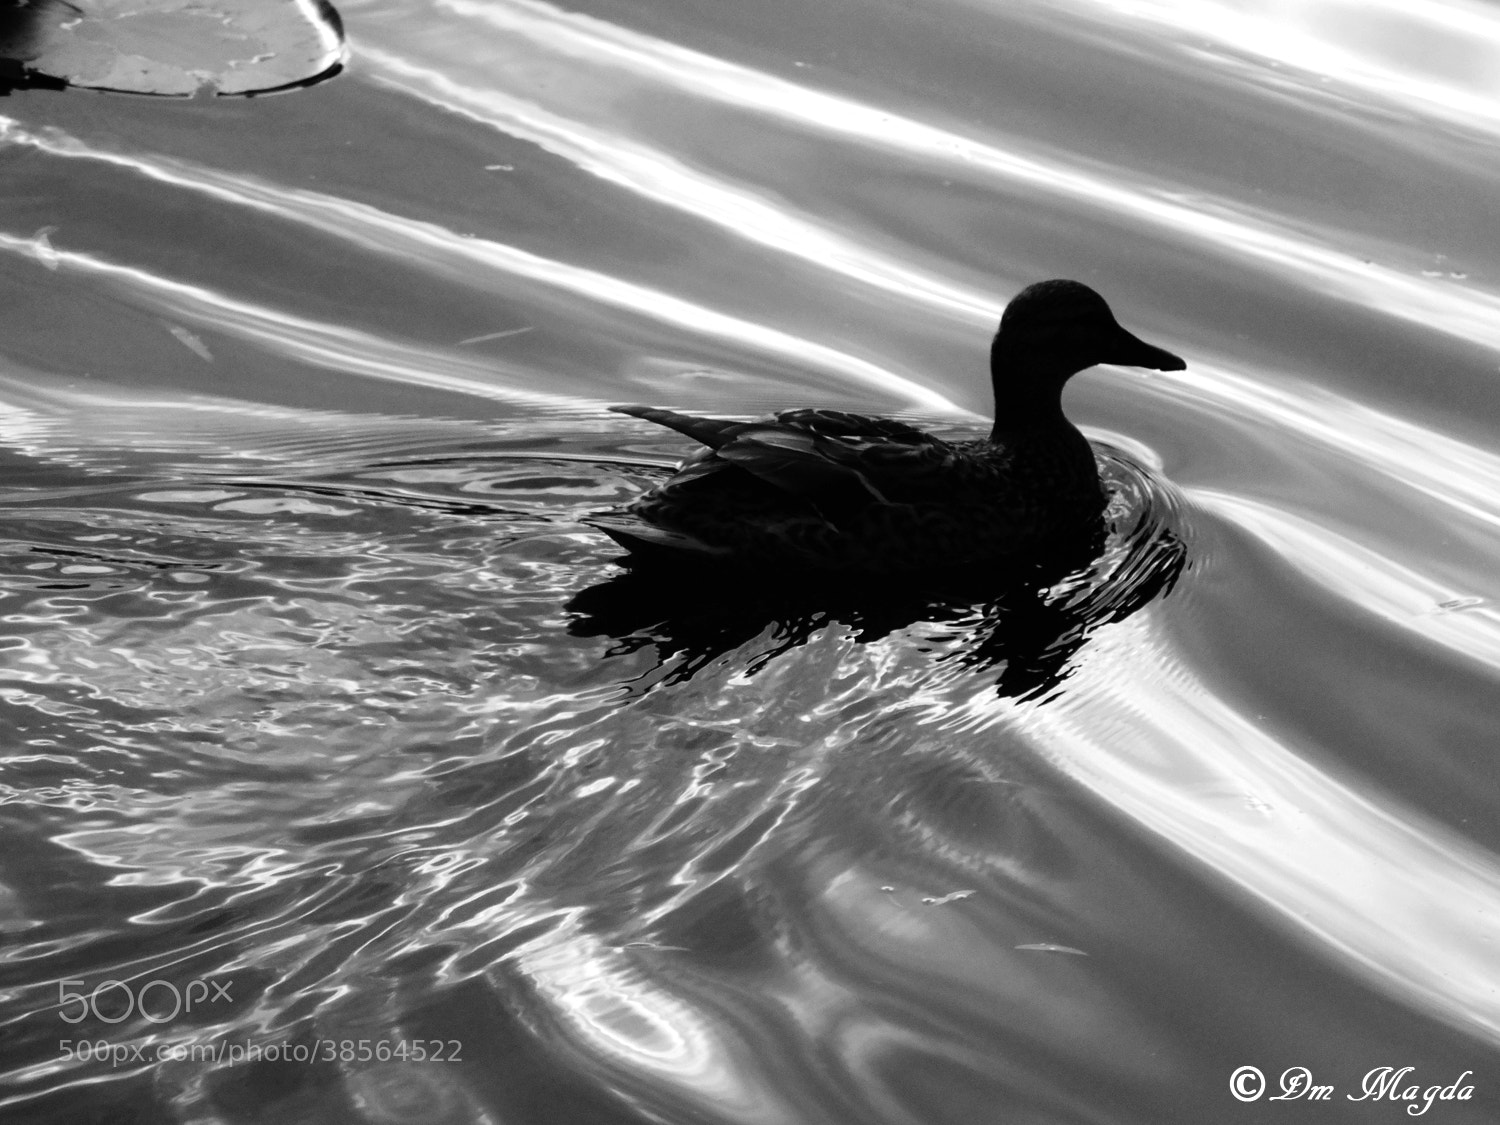 Photograph duck by mada dm on 500px